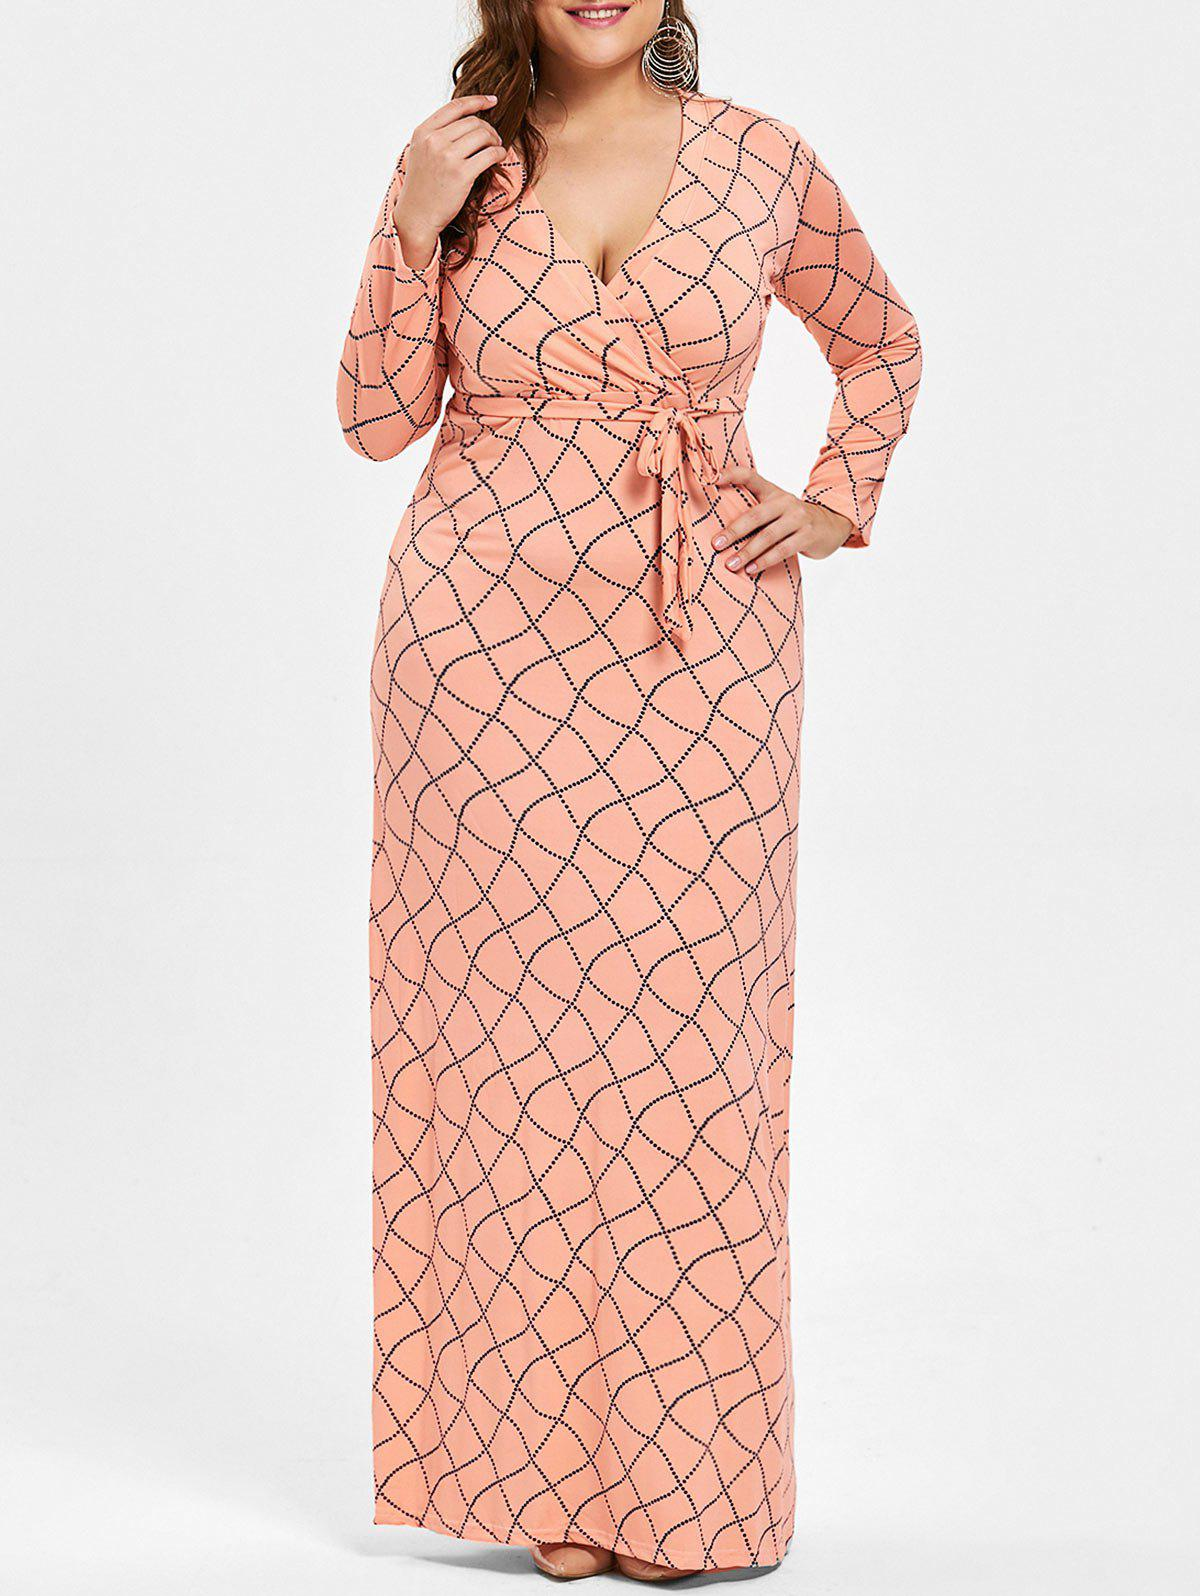 Plus Size Belted Surplice Geometric Maxi DressWOMEN<br><br>Size: 5XL; Color: MELON YELLOW; Style: Casual; Material: Cotton,Polyester; Silhouette: A-Line; Dresses Length: Floor-Length; Neckline: Plunging Neck; Sleeve Length: Long Sleeves; Pattern Type: Geometric; With Belt: Yes; Season: Fall; Weight: 0.3900kg; Package Contents: 1 x Dress 1 x Belt;